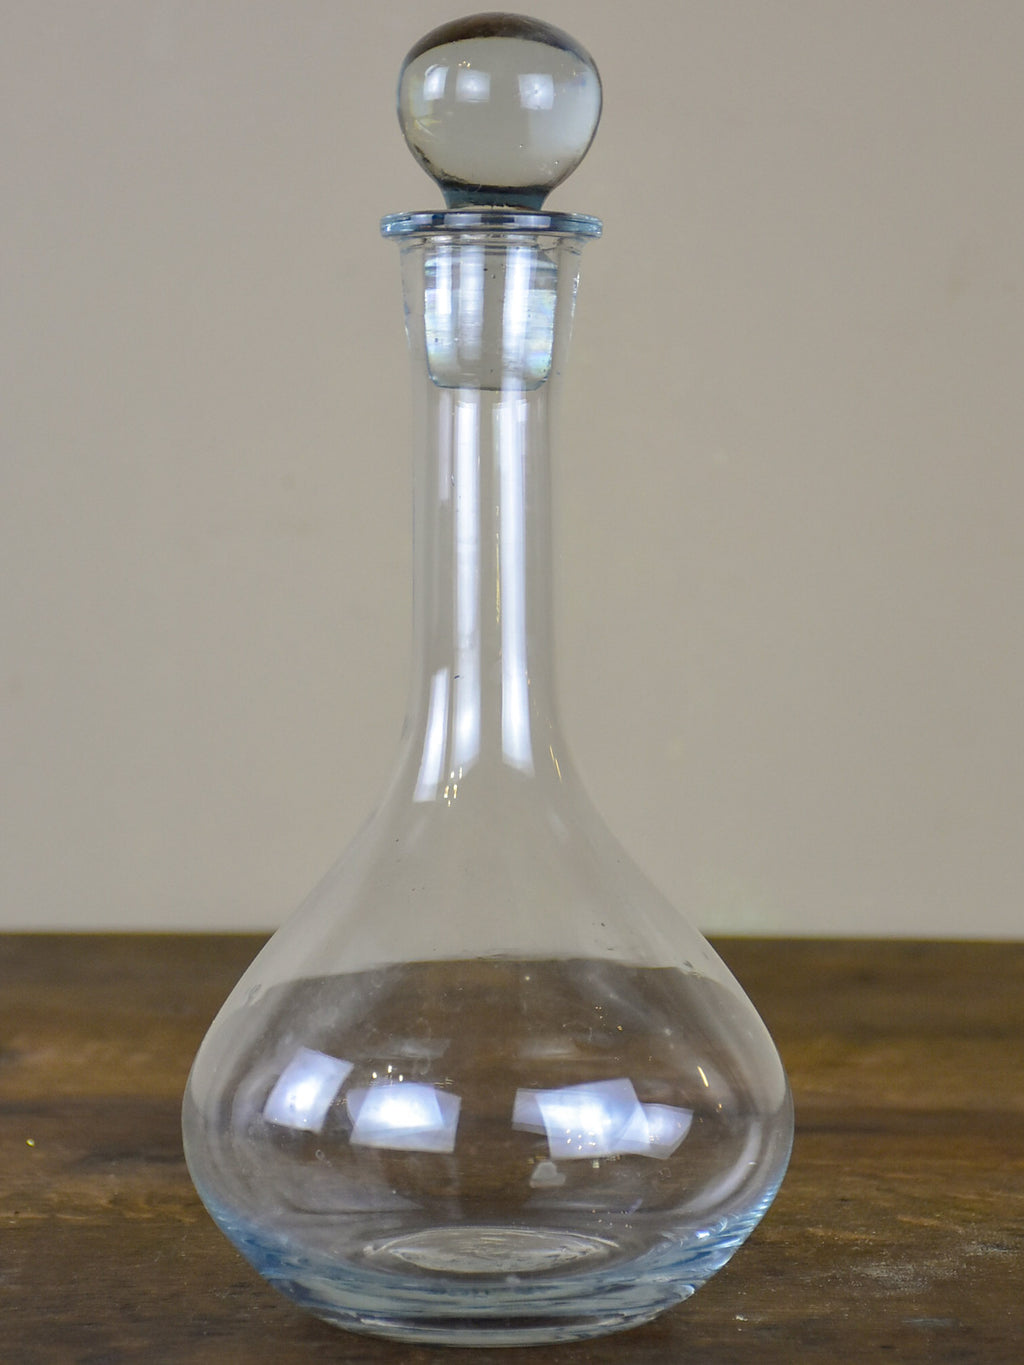 Vintage French wine decanter with glass stopper